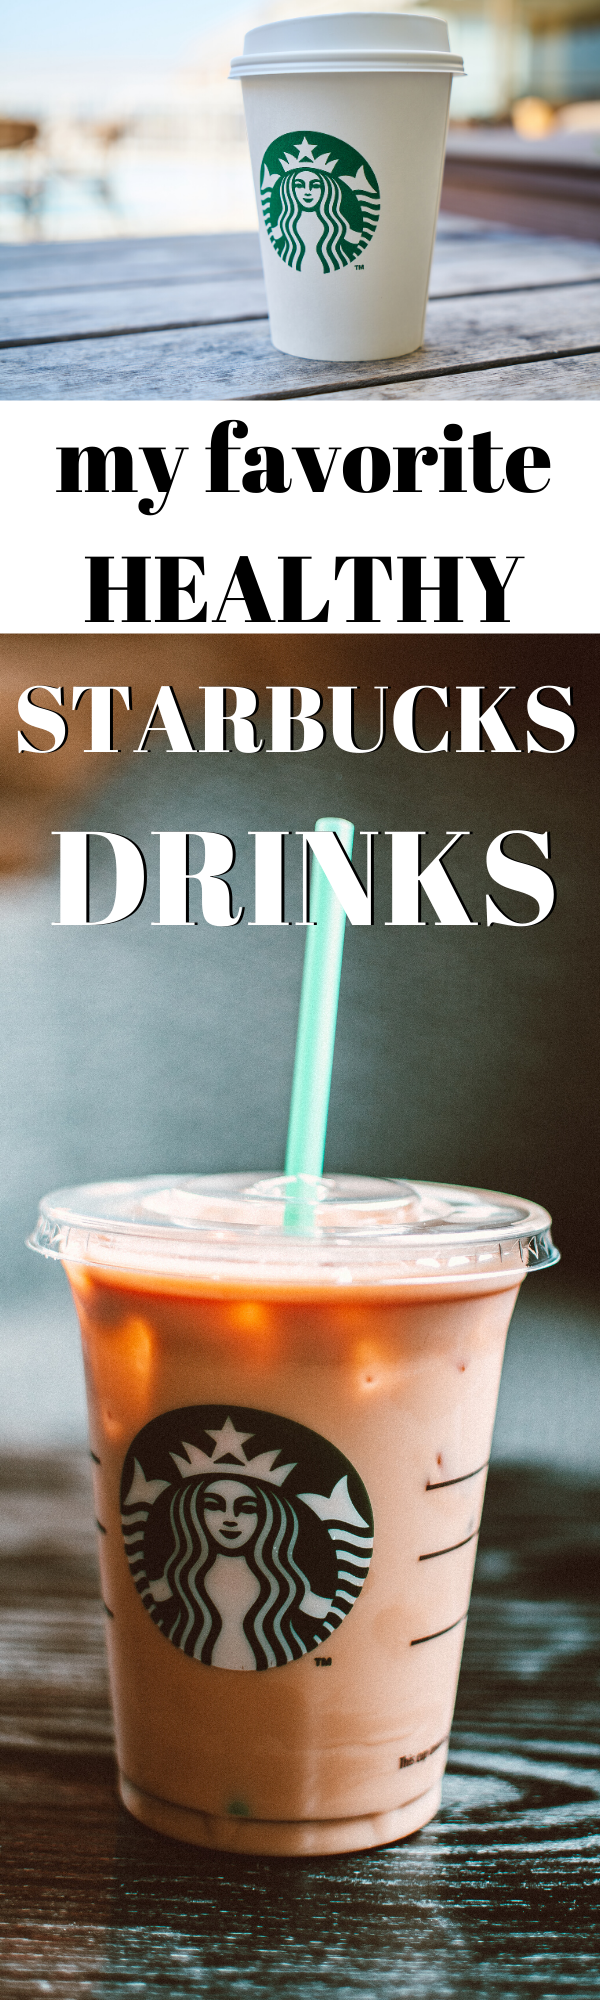 Healthy Starbucks CoffeeOptions in 2020 Healthy